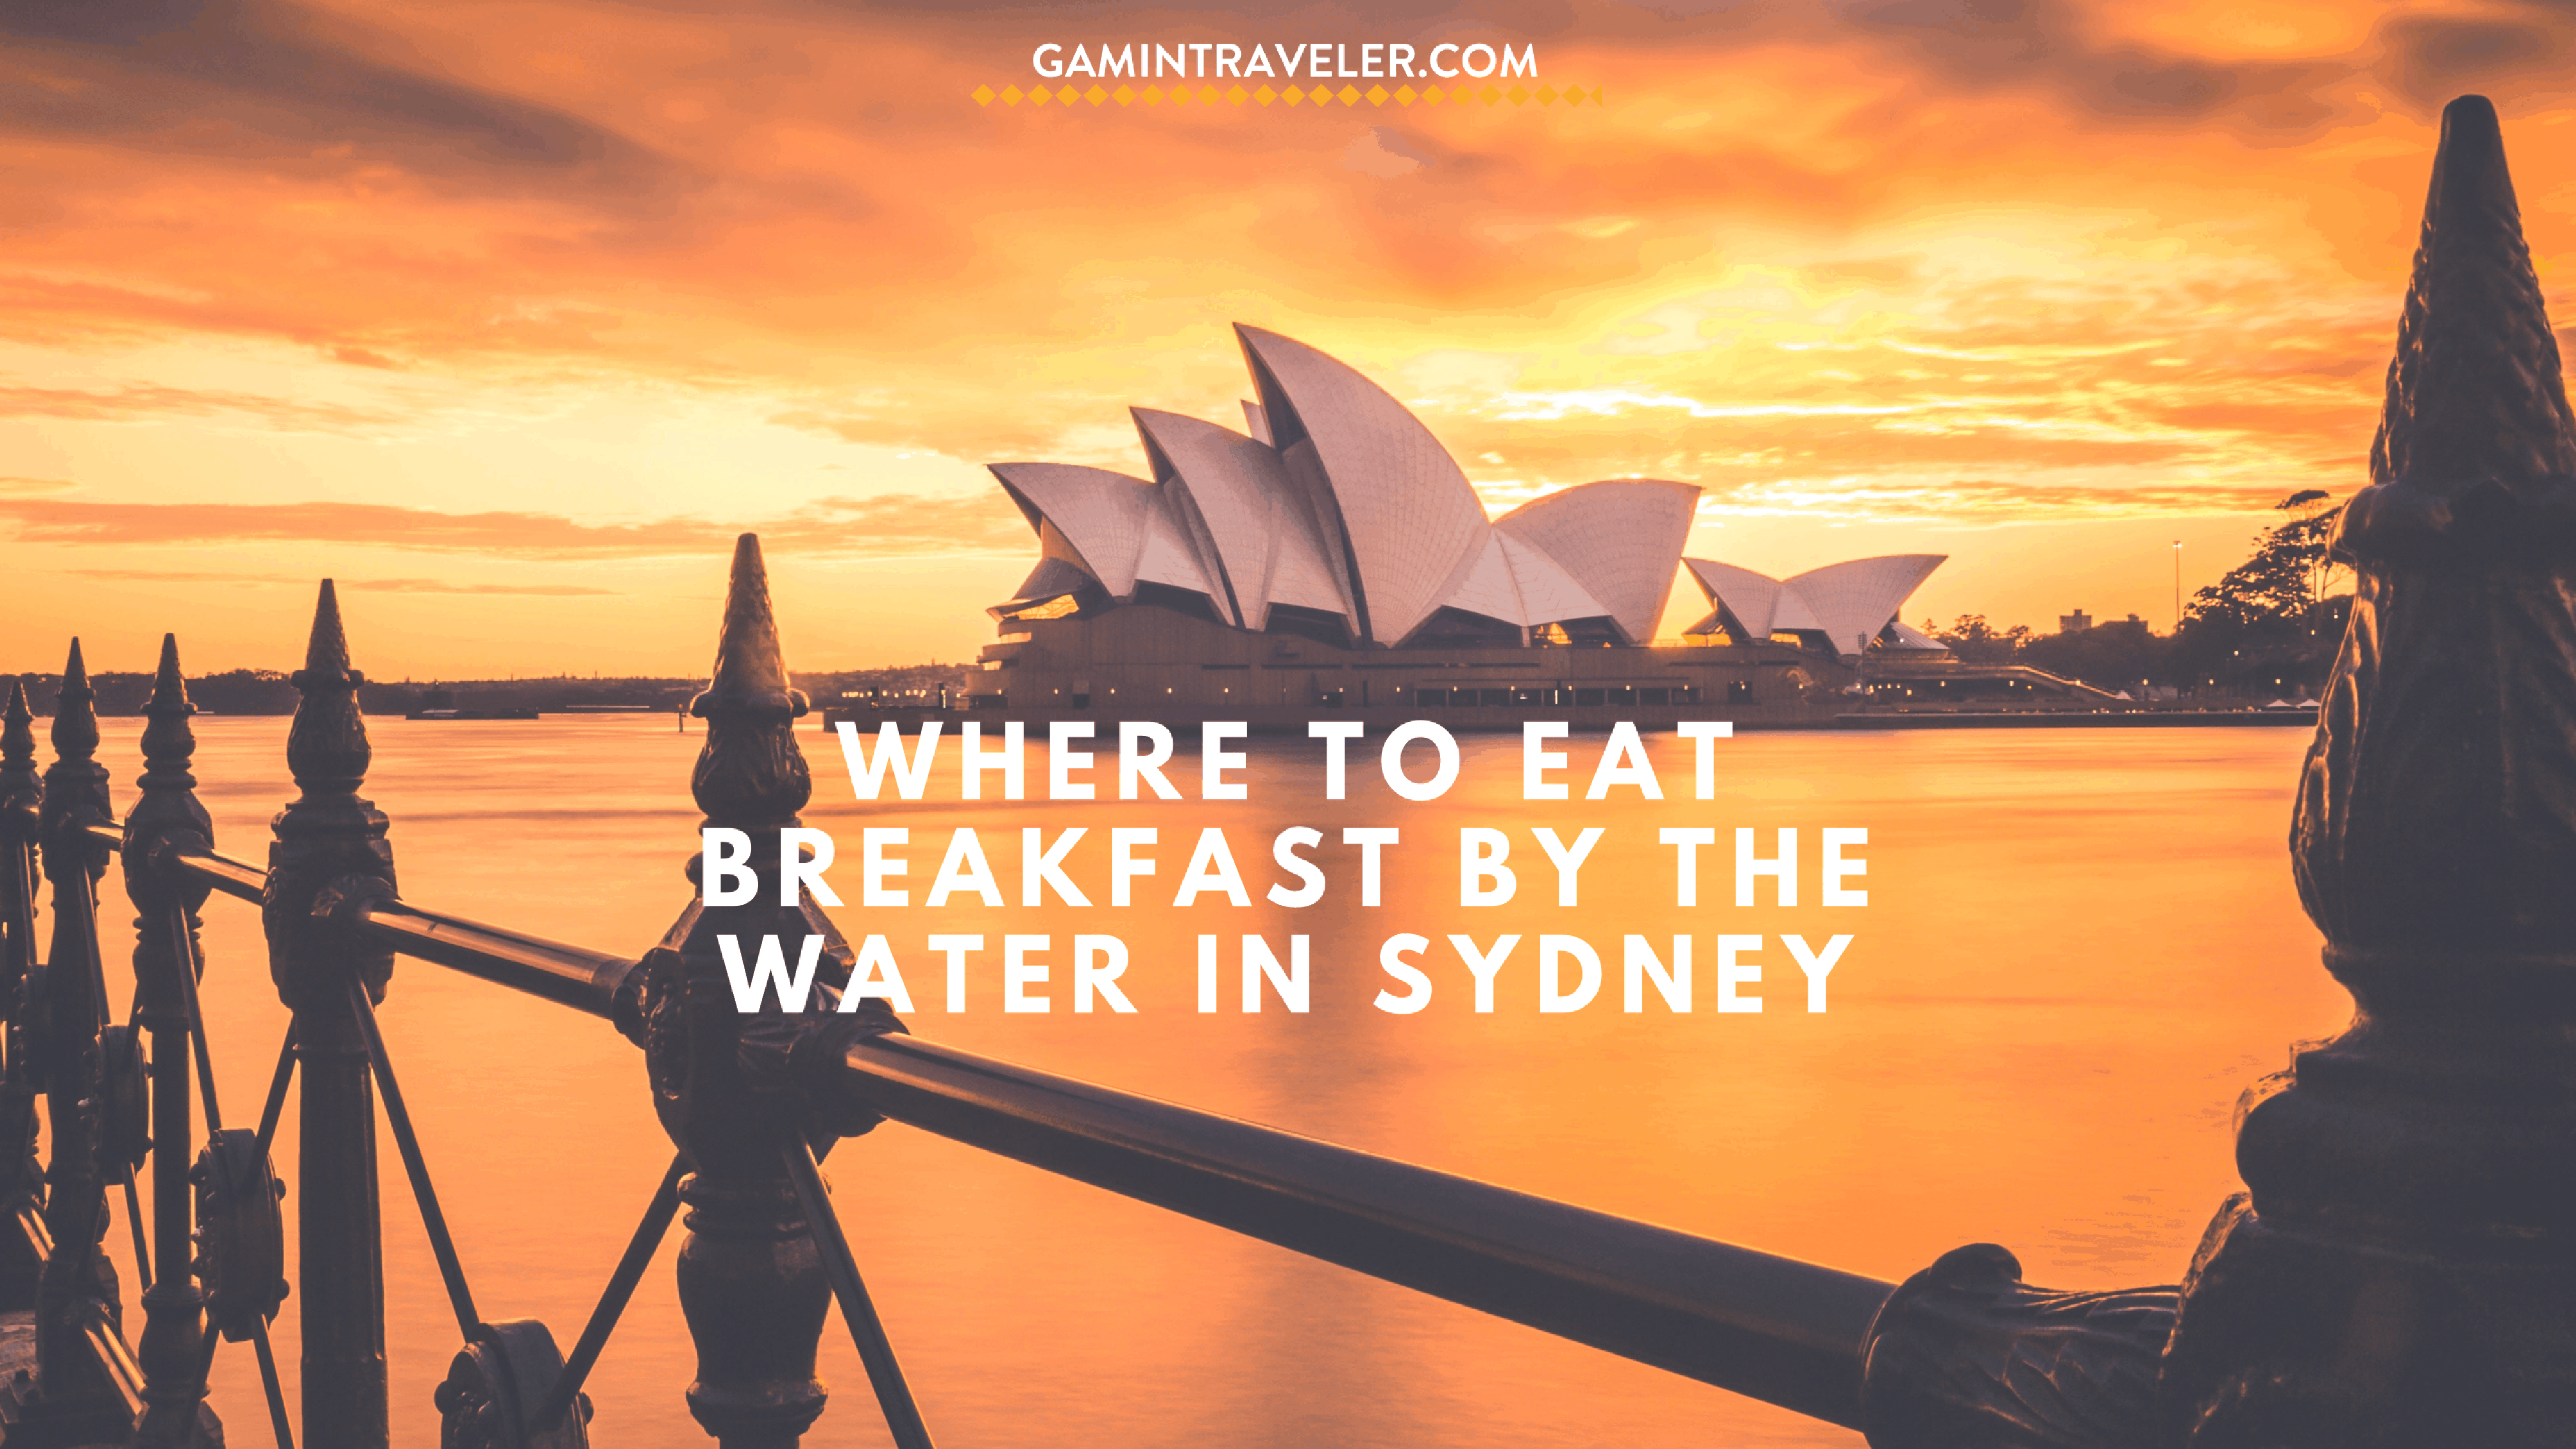 Where to Eat Breakfast by the Water in Sydney